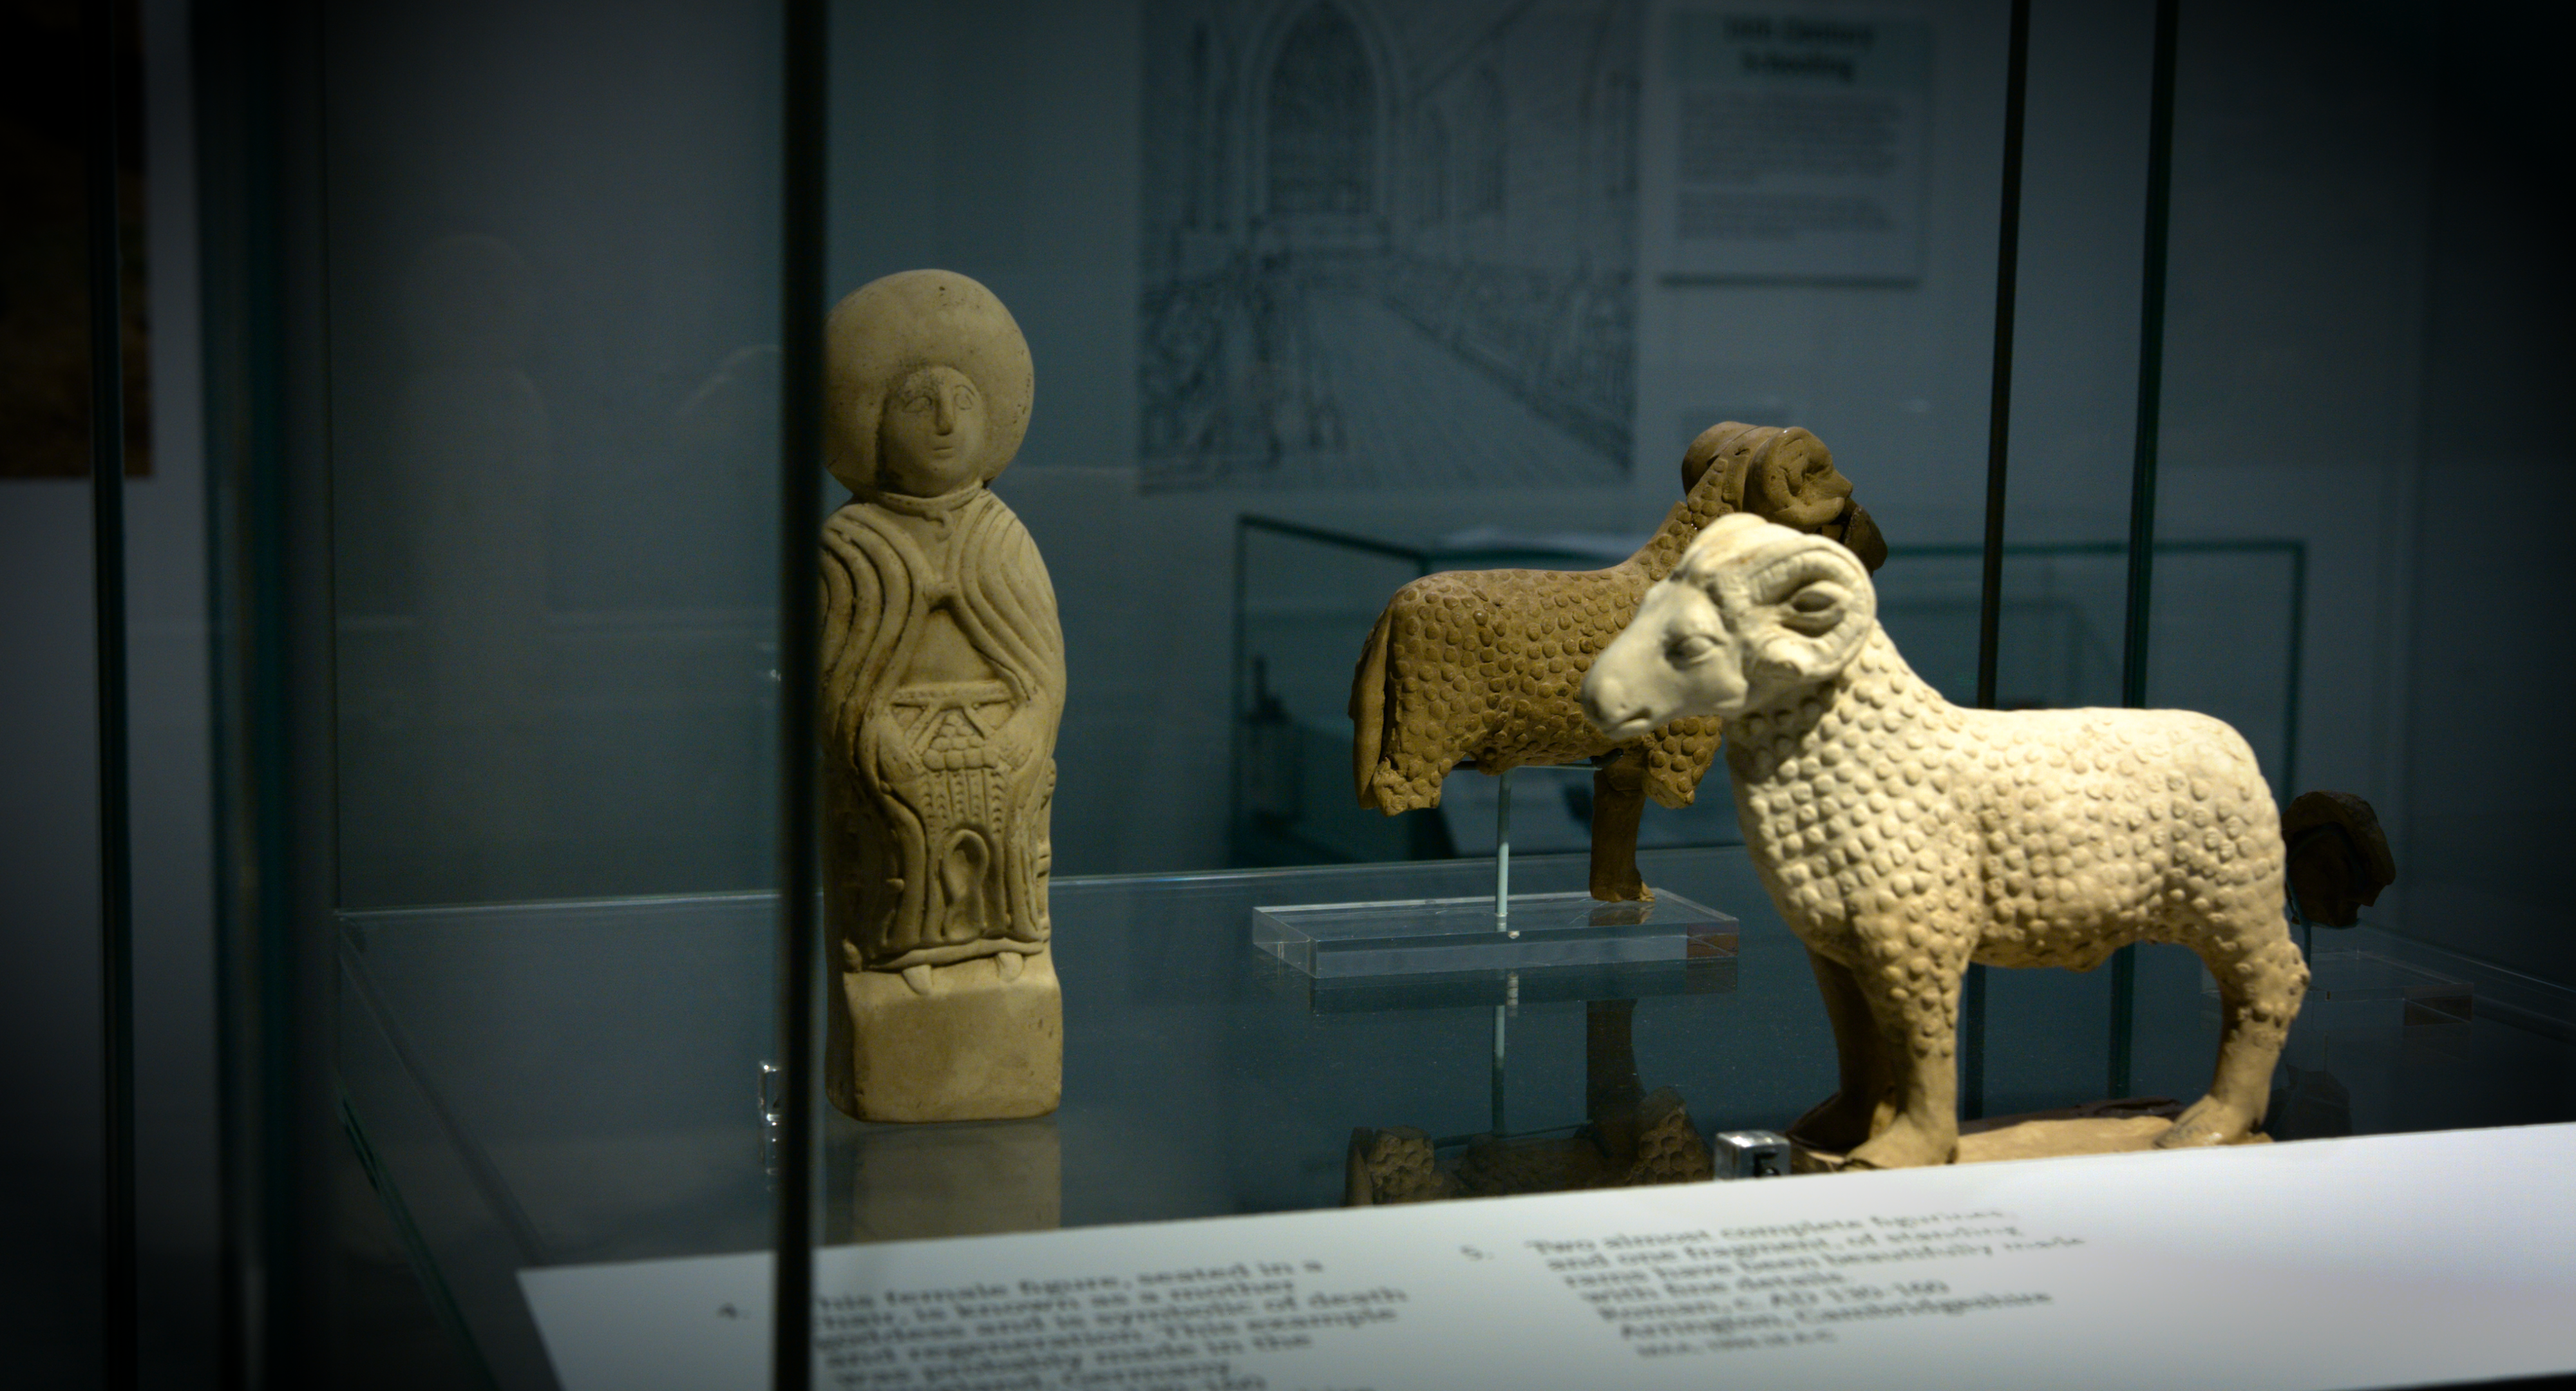 Figurines of a seated woman and of rams